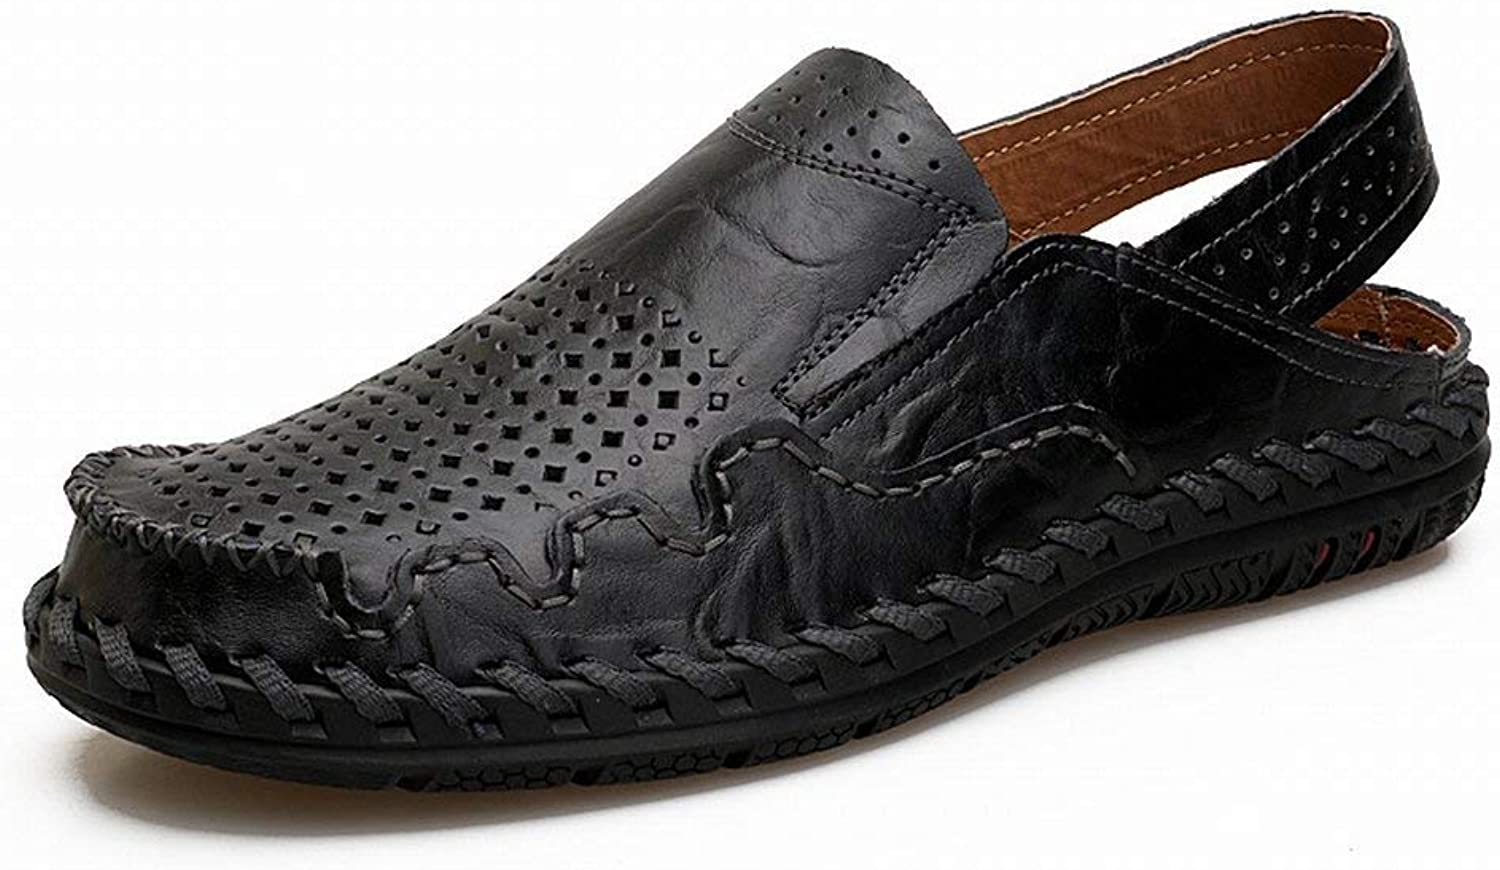 Oudan Fashion Non-slip Wearing Beach shoes Leather Male Sandals Double-Use Slippers (color   Black, Size   UK 6.5)